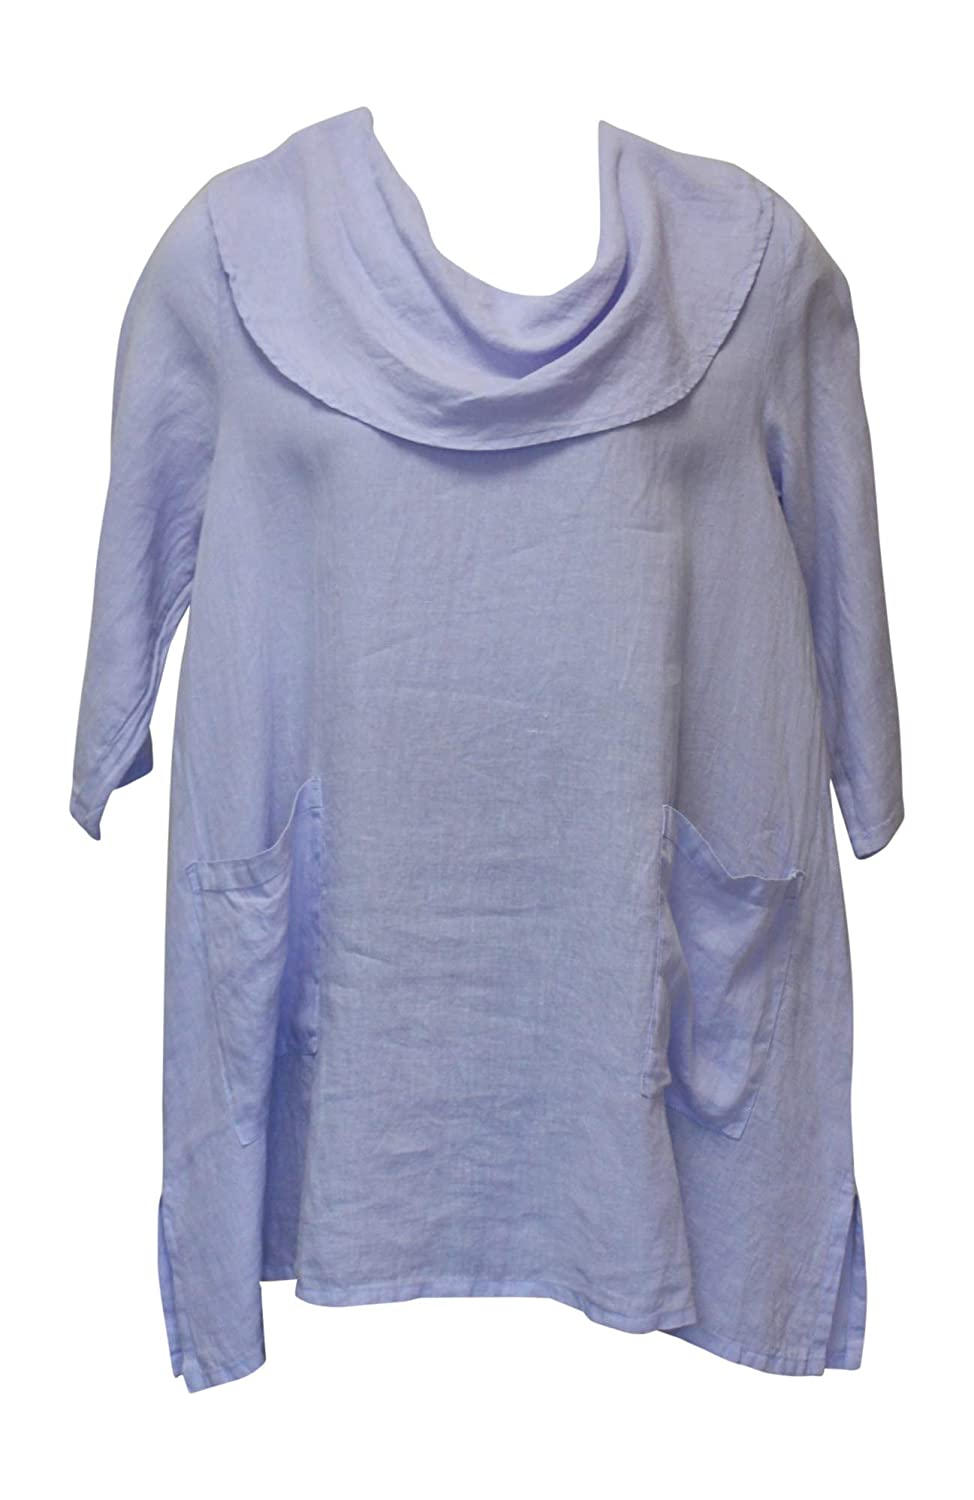 2X Match Point Womens Cowl Neck Linen Tunic Top sizes Small